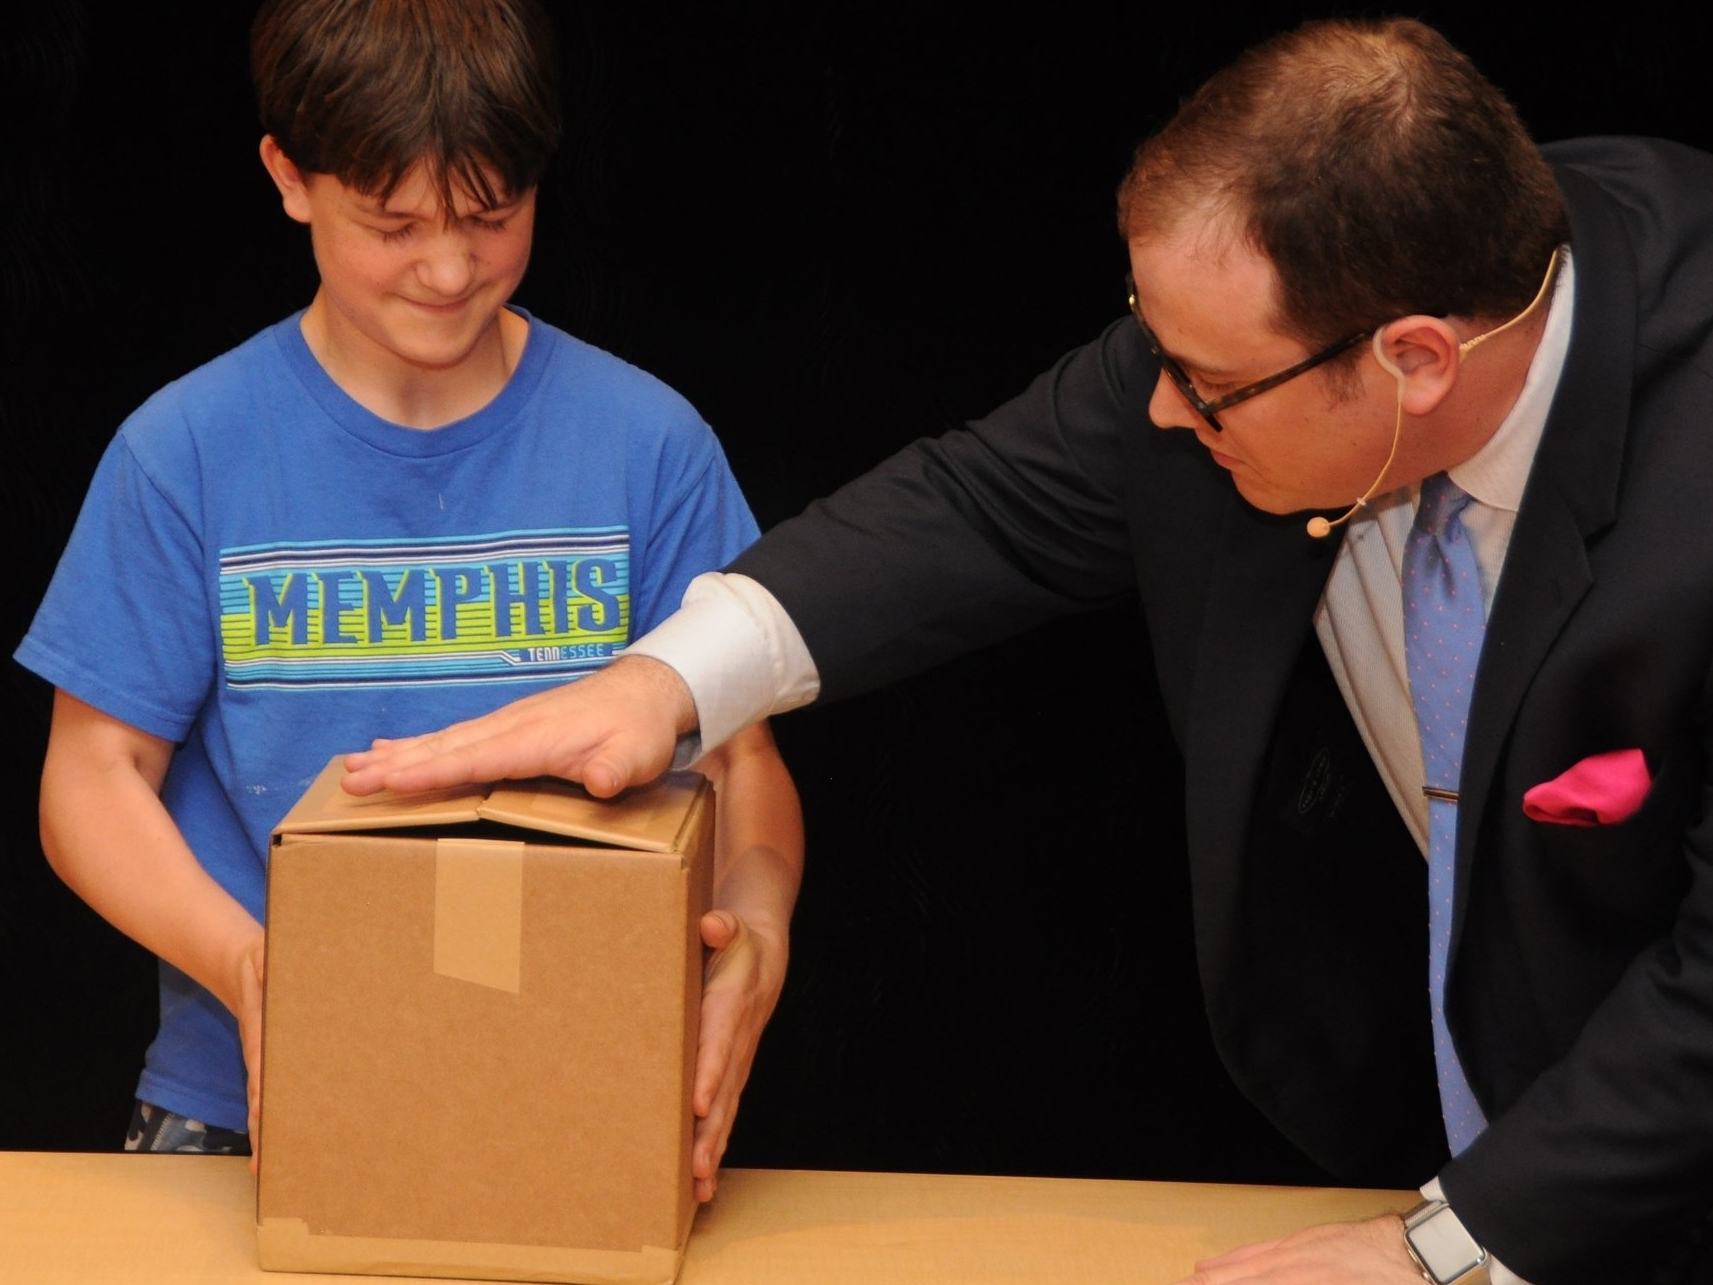 To teach empathy and demonstrate how bullying victims can feel, a student is suddenly unable to lift a small cardboard box.